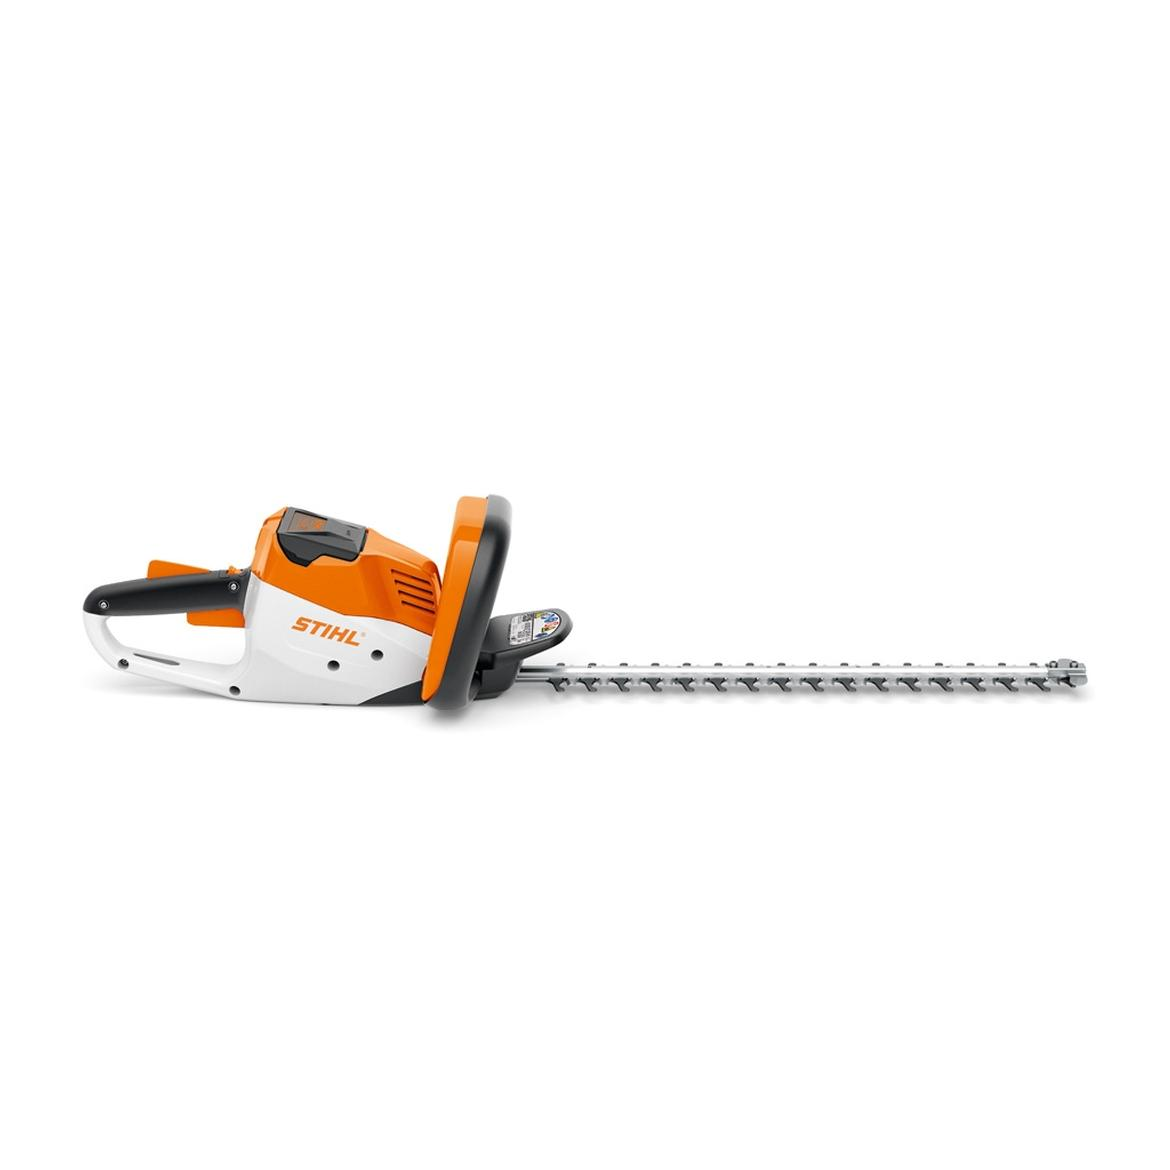 stihl hsa56 cordless hedgetrimmer 18 radmore tucker. Black Bedroom Furniture Sets. Home Design Ideas